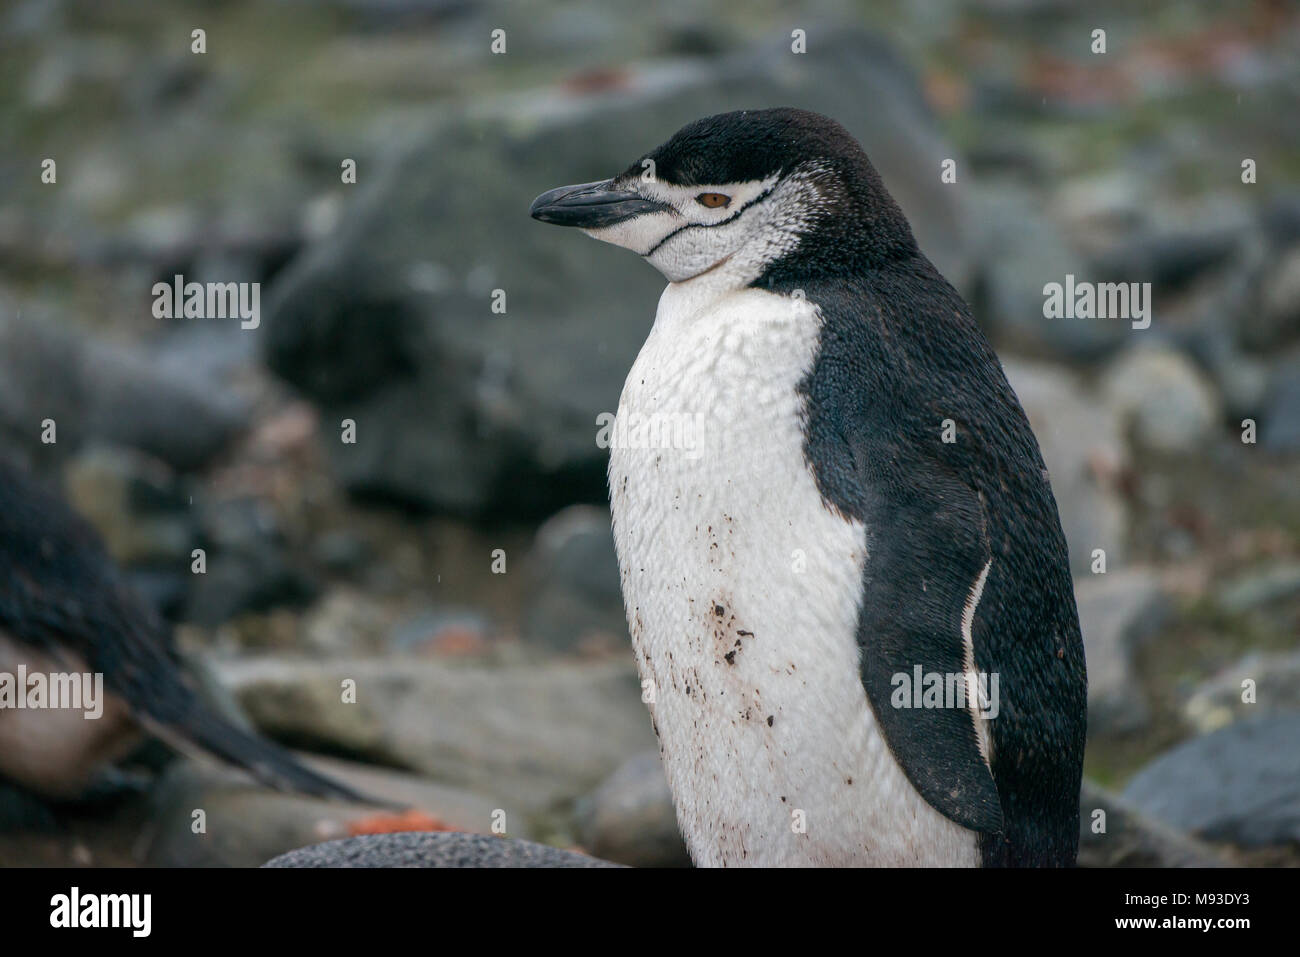 A Chinstrap Penguin (Pygoscelis antarcticus) on a rainy Half Moon Island in Antarctica - Stock Image